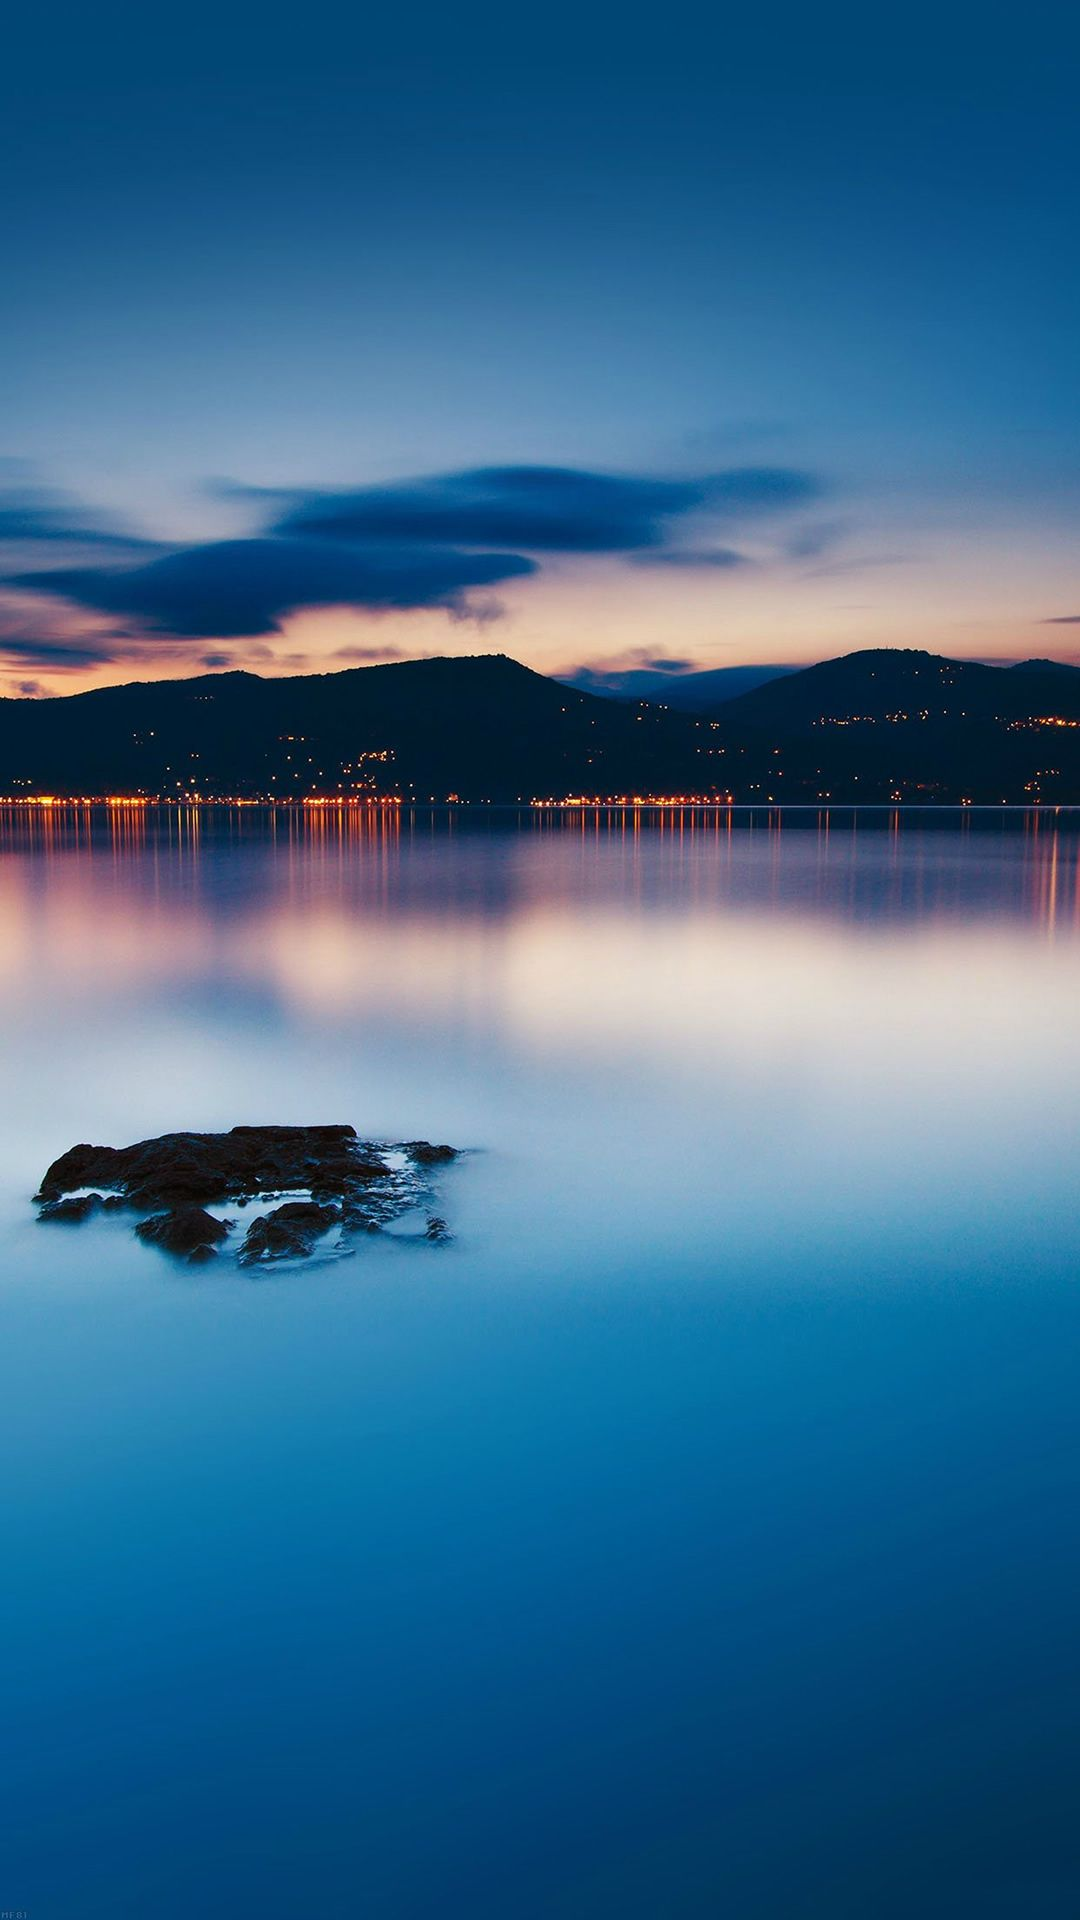 Nature Peaceful Lake Night Cityscape Scene Iphone 6 Wallpaper Download Iphone Wallpapers Ipad Wallpape Iphone 5s Wallpaper Iphone Wallpaper Nature Wallpaper